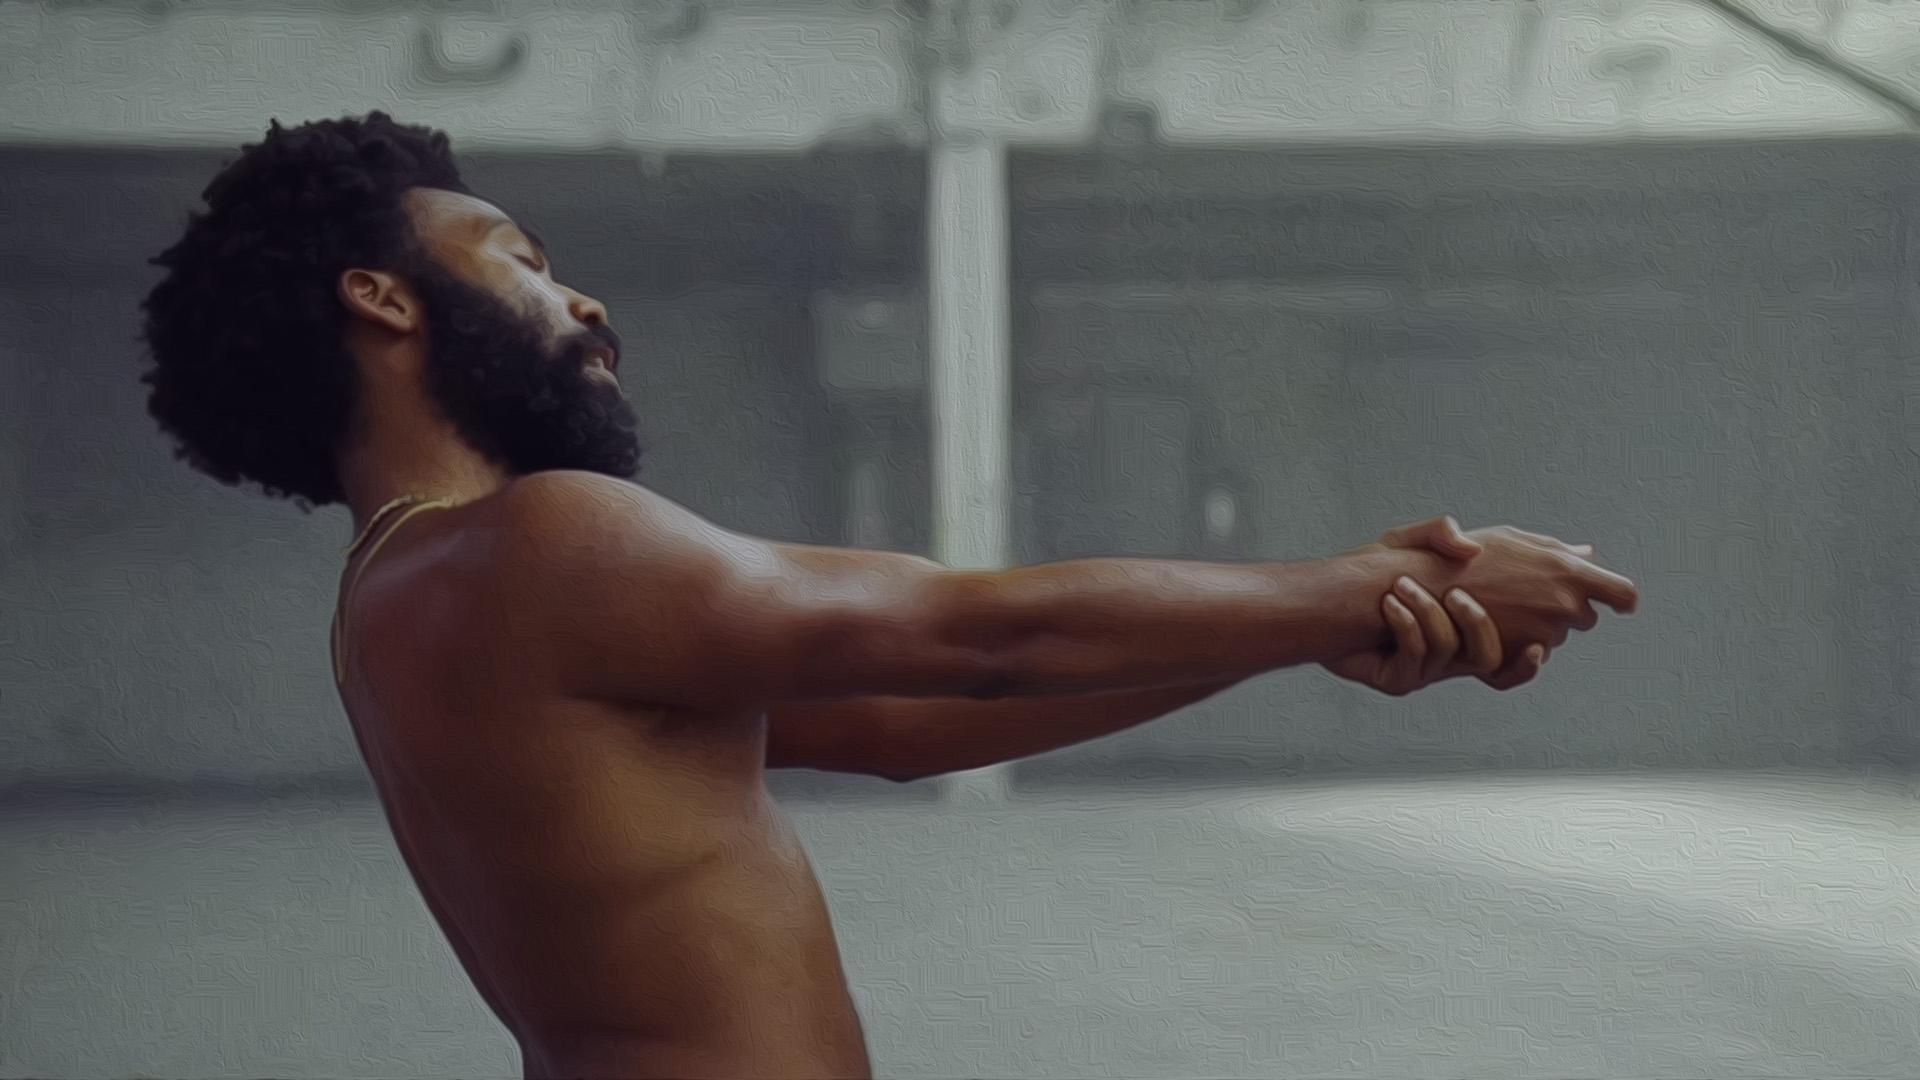 1920x1080] This is america wallpaper 1920x1080